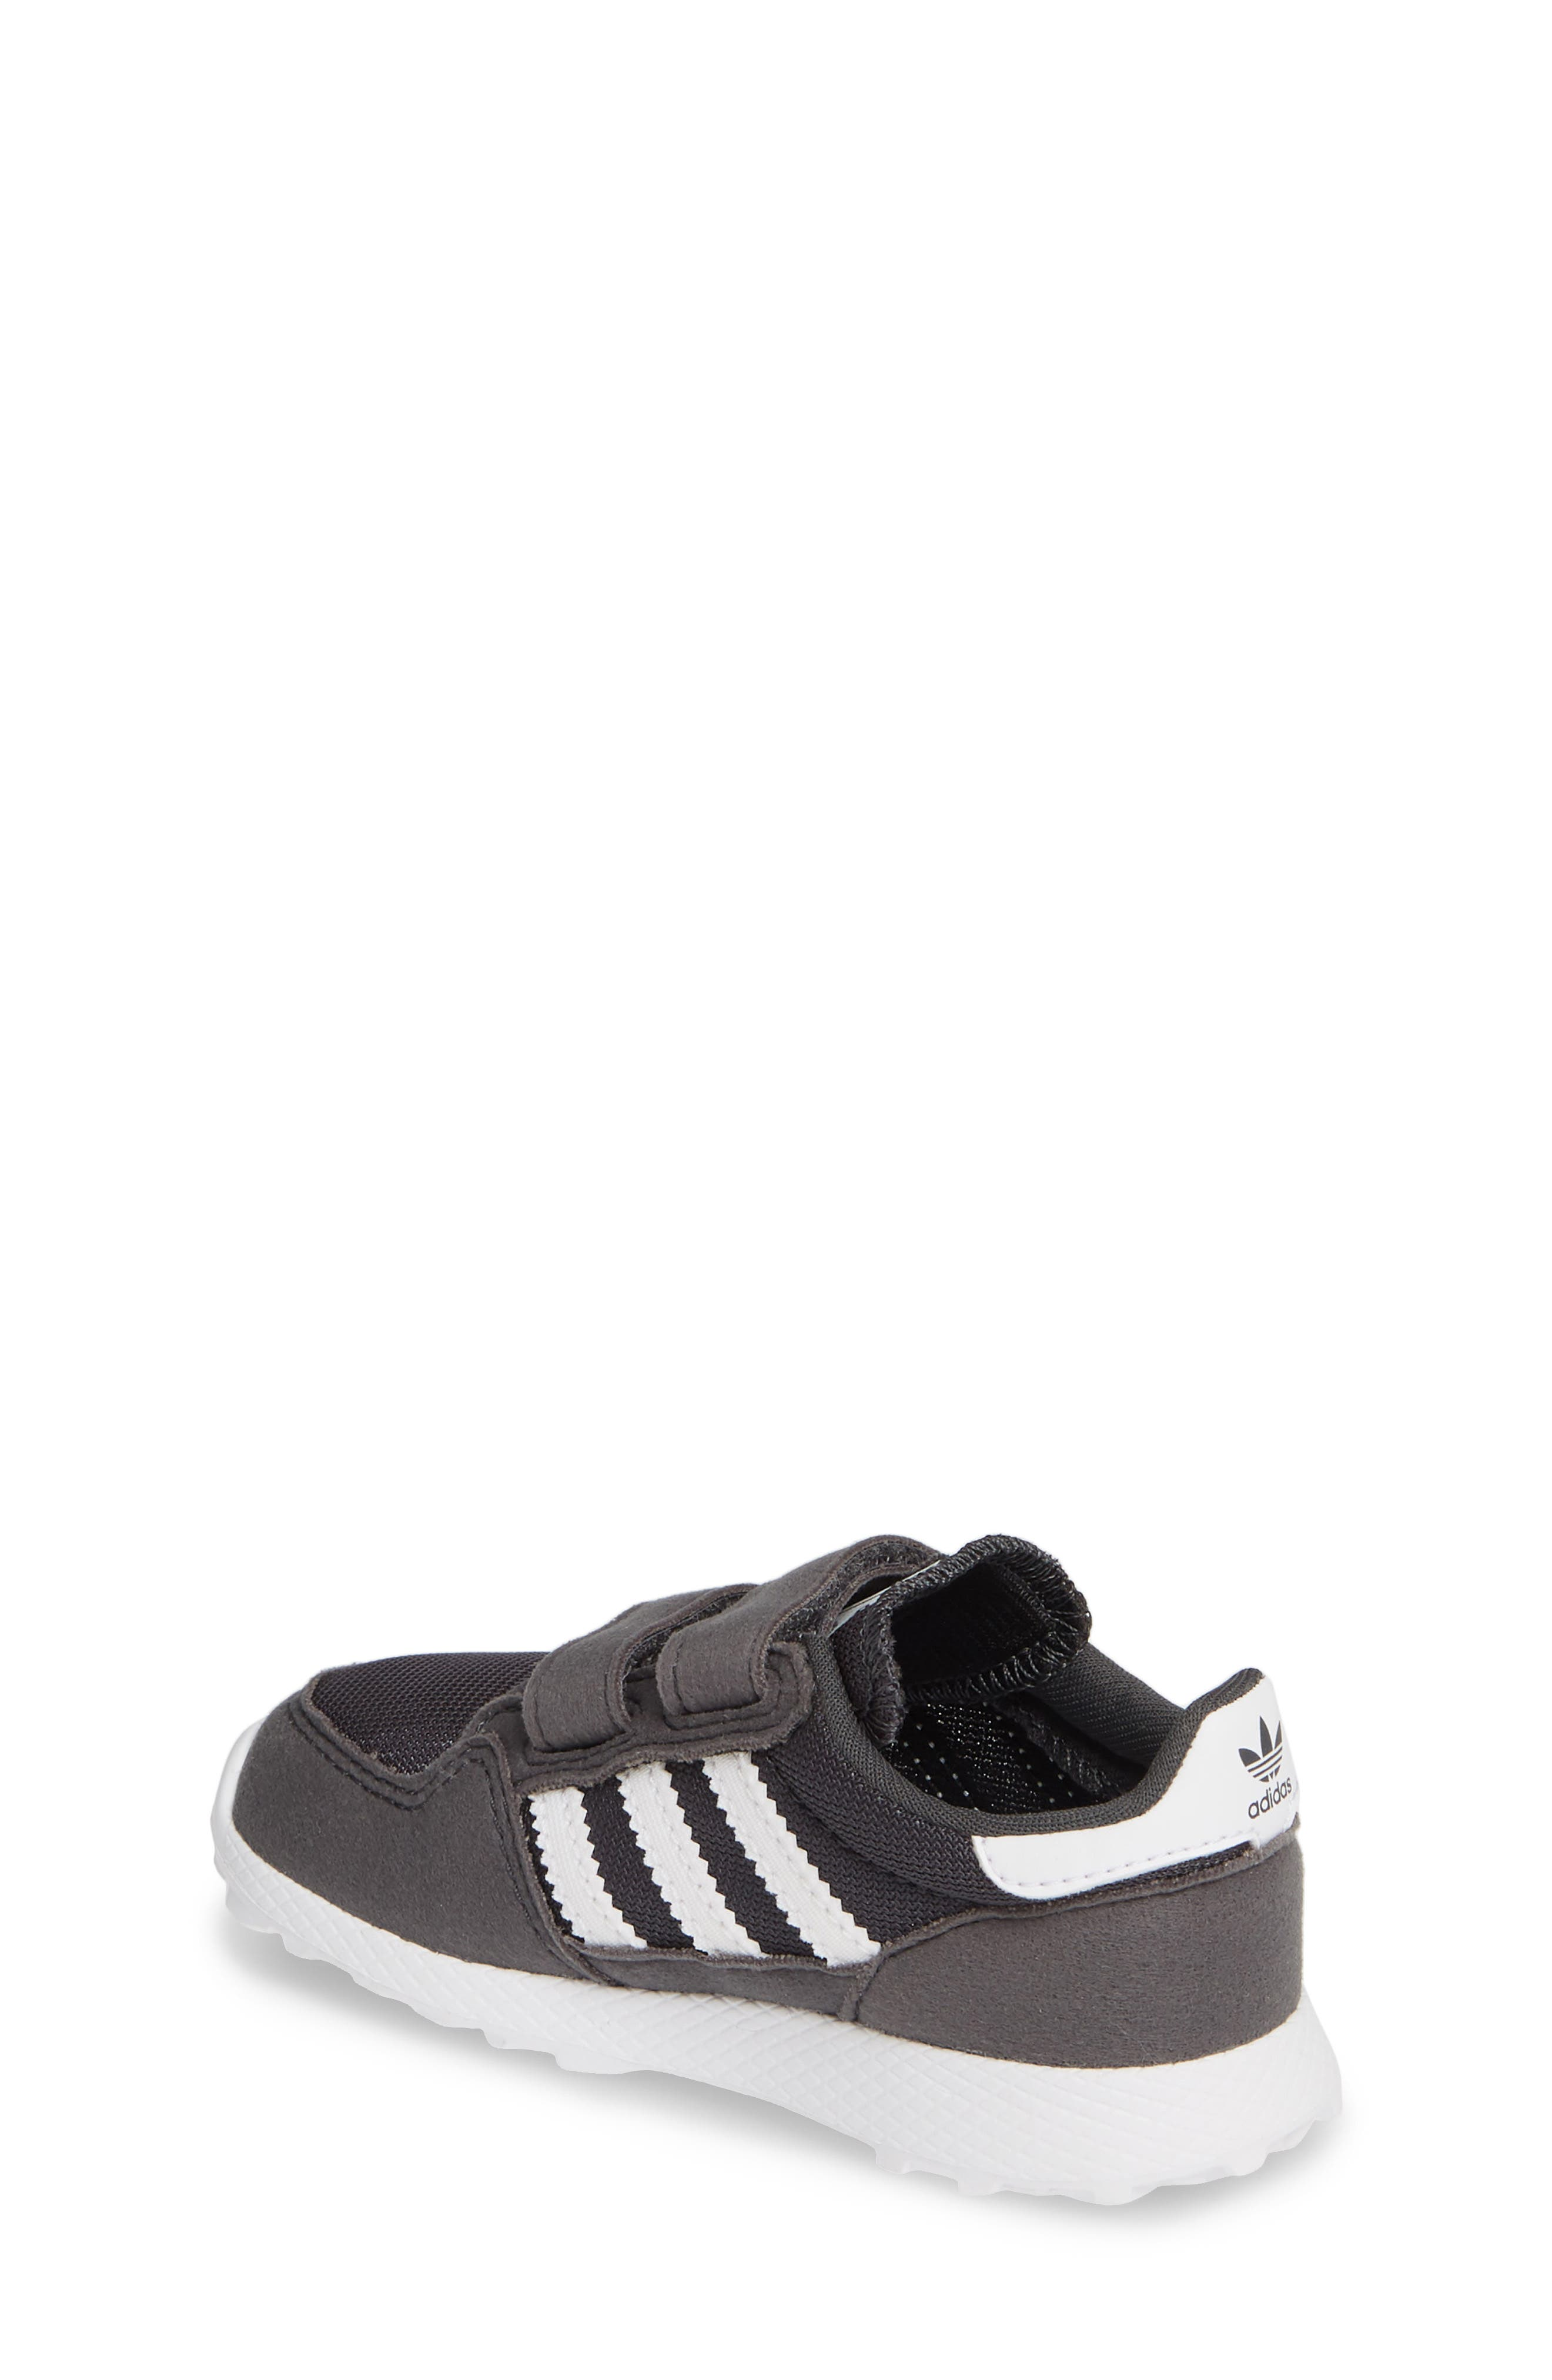 free shipping 59795 76183 Baby, Walker  Toddler Adidas Shoes  Nordstrom